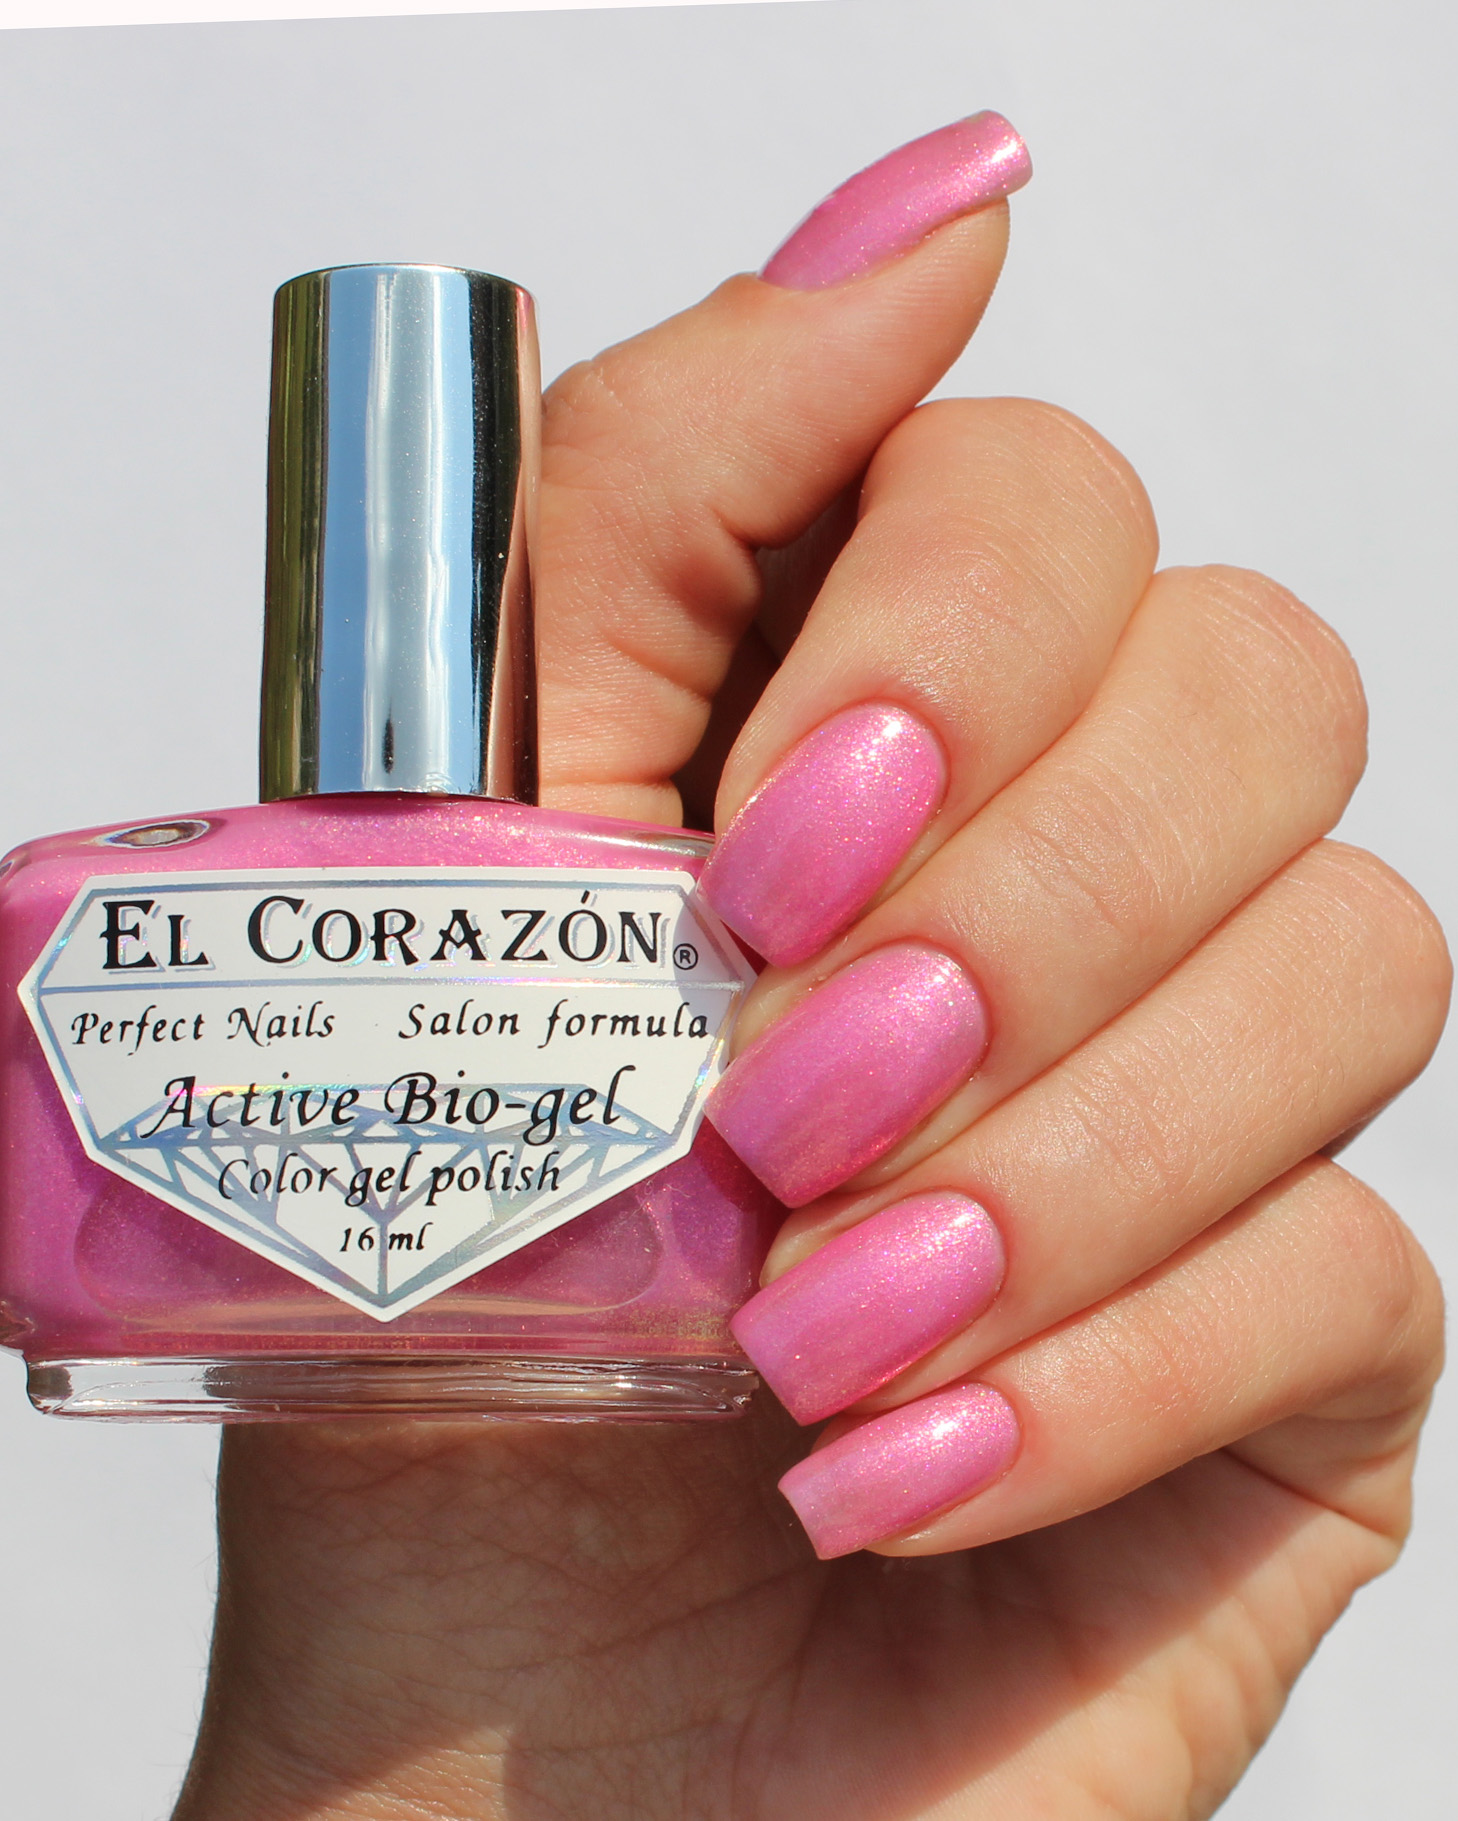 El Corazon Active Bio-gel № 423/553 Magic Charmer